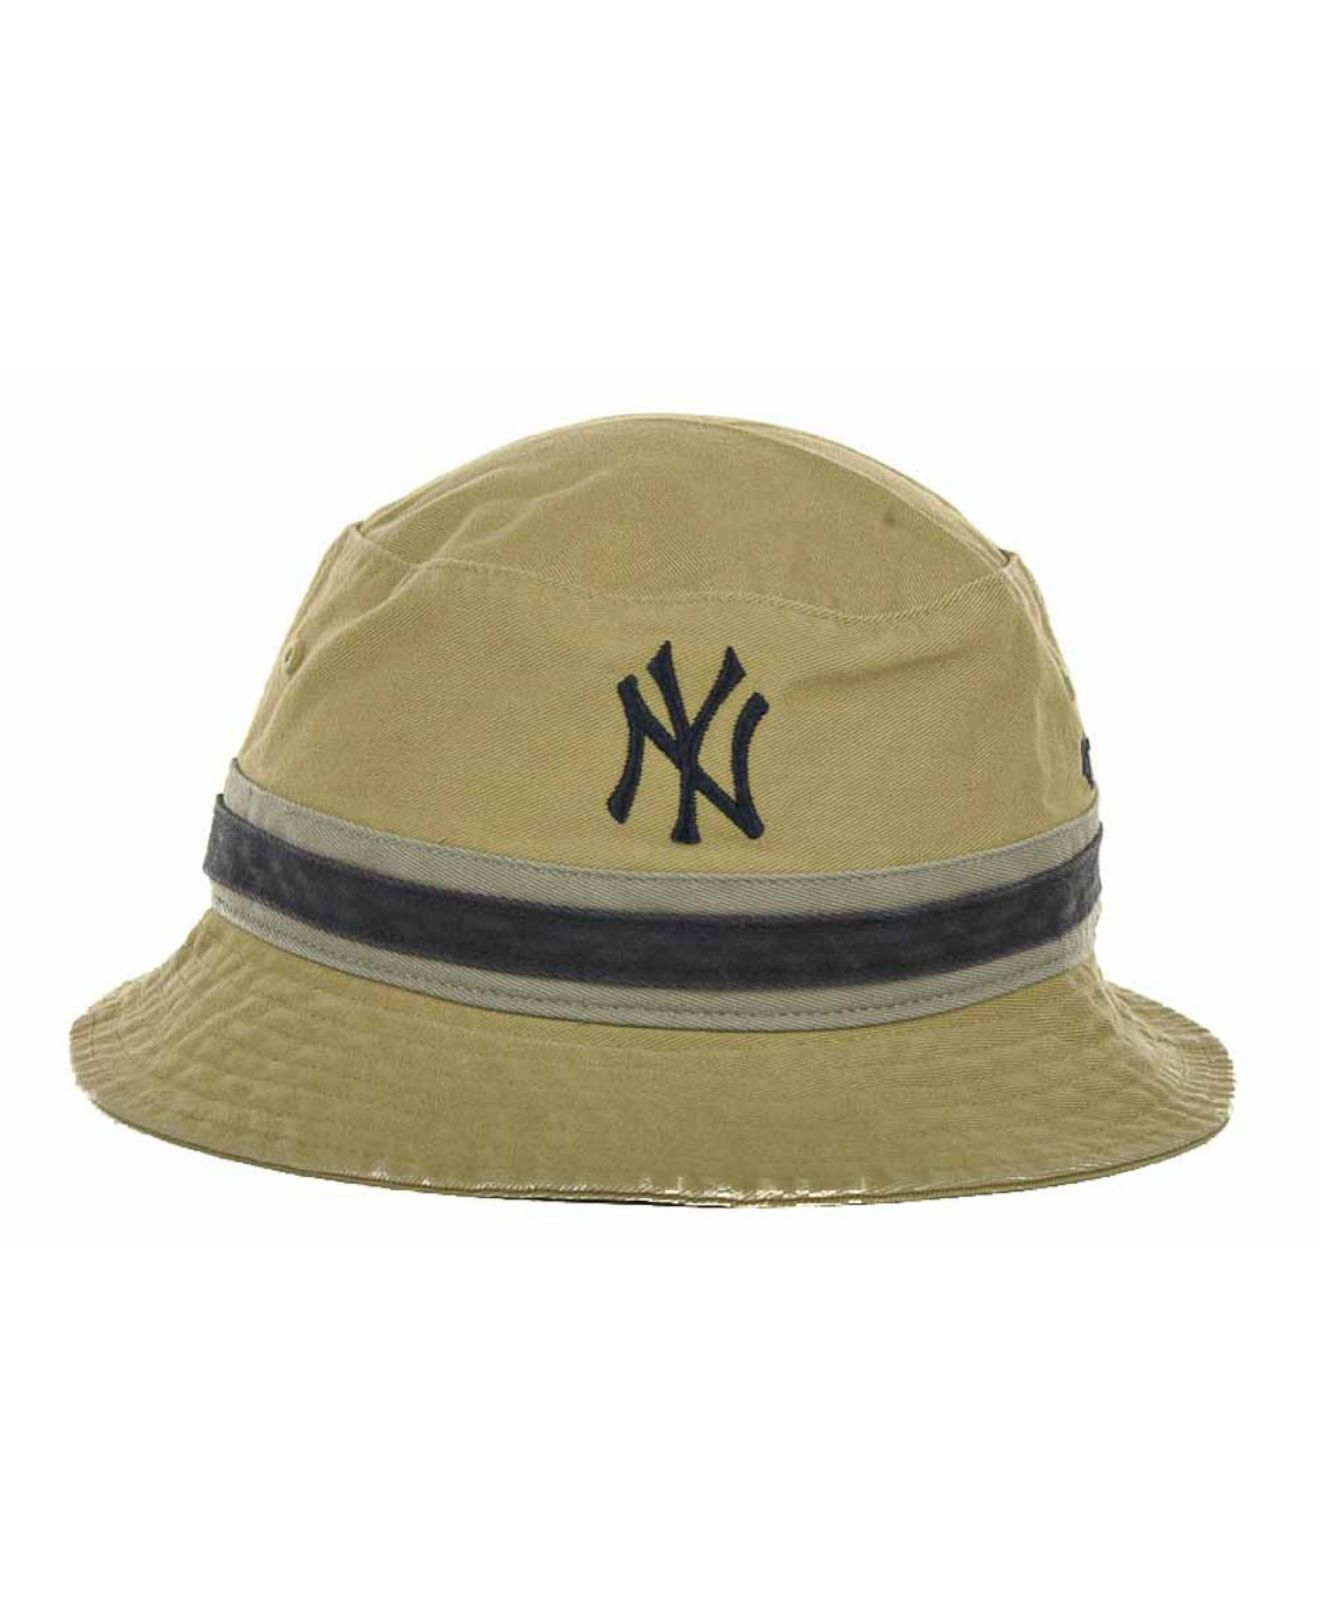 Lyst - 47 Brand New York Yankees Striped Bucket Hat in Natural d295350585c